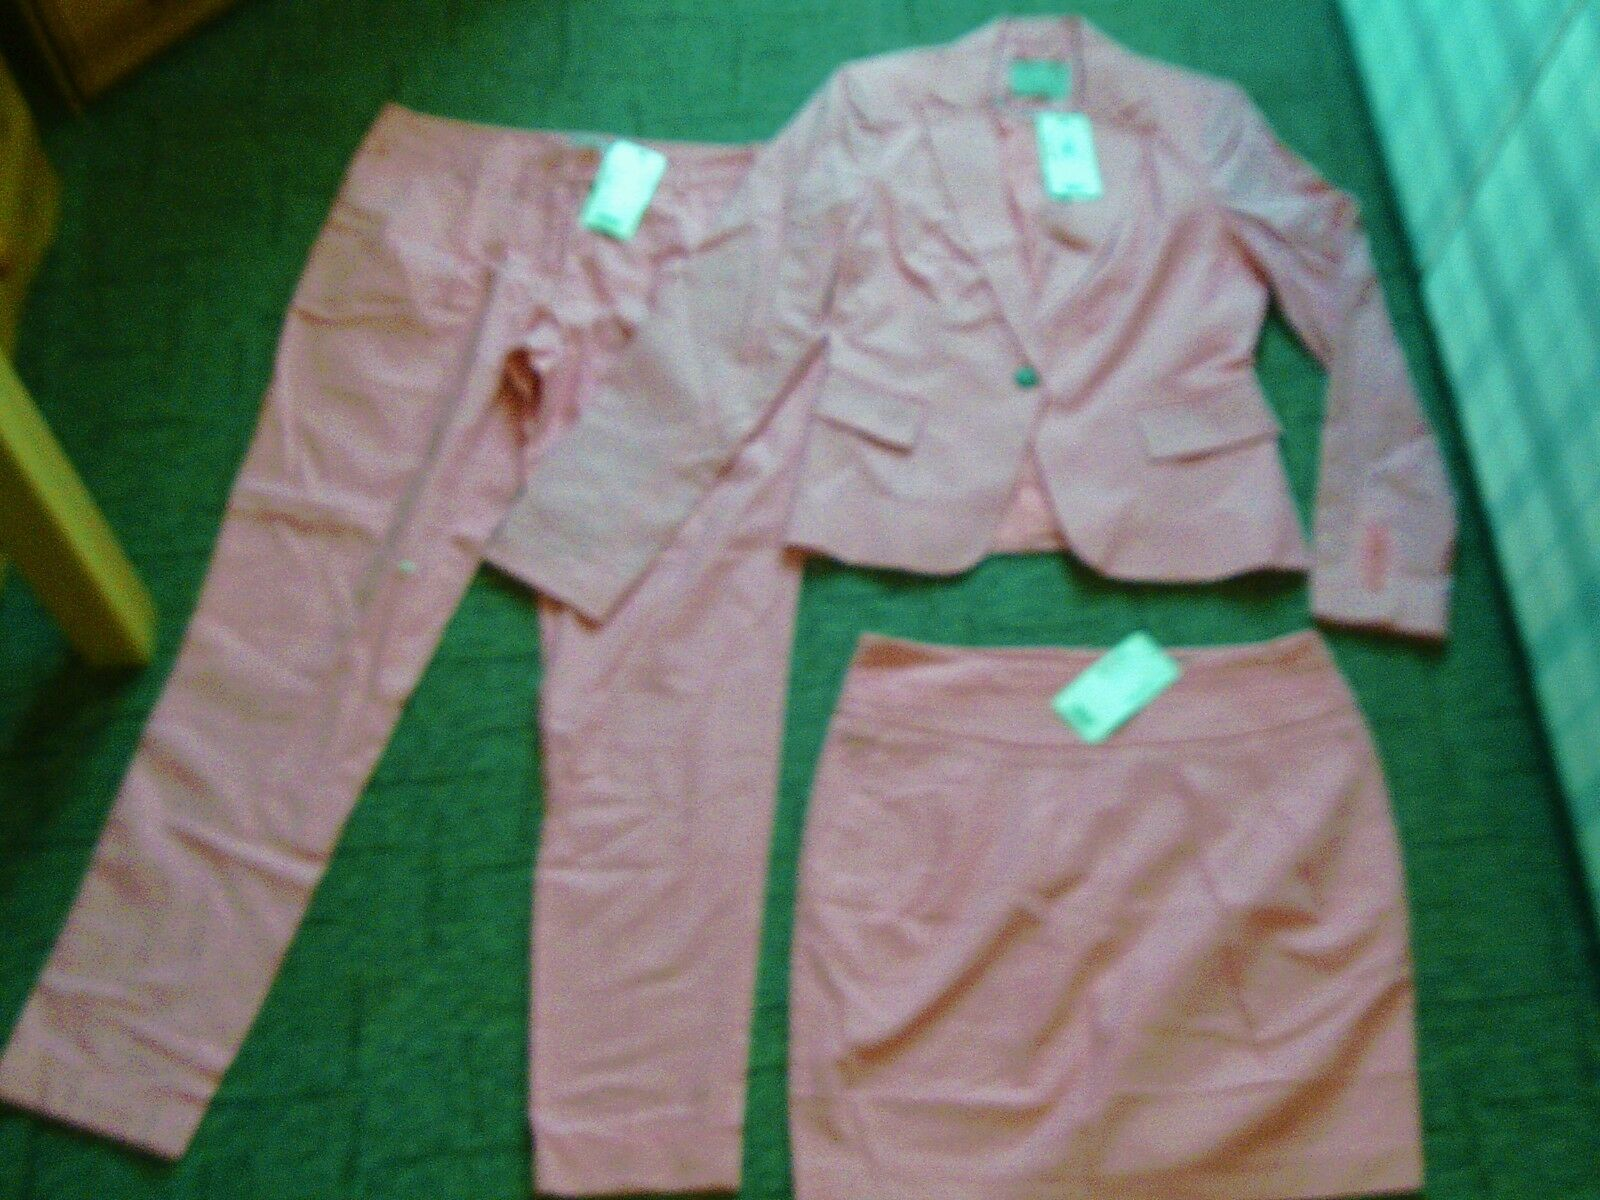 3 x PIECE 55% LINEN PINK SUIT,. SIZE MAYBE 10. NWT. r.r.p